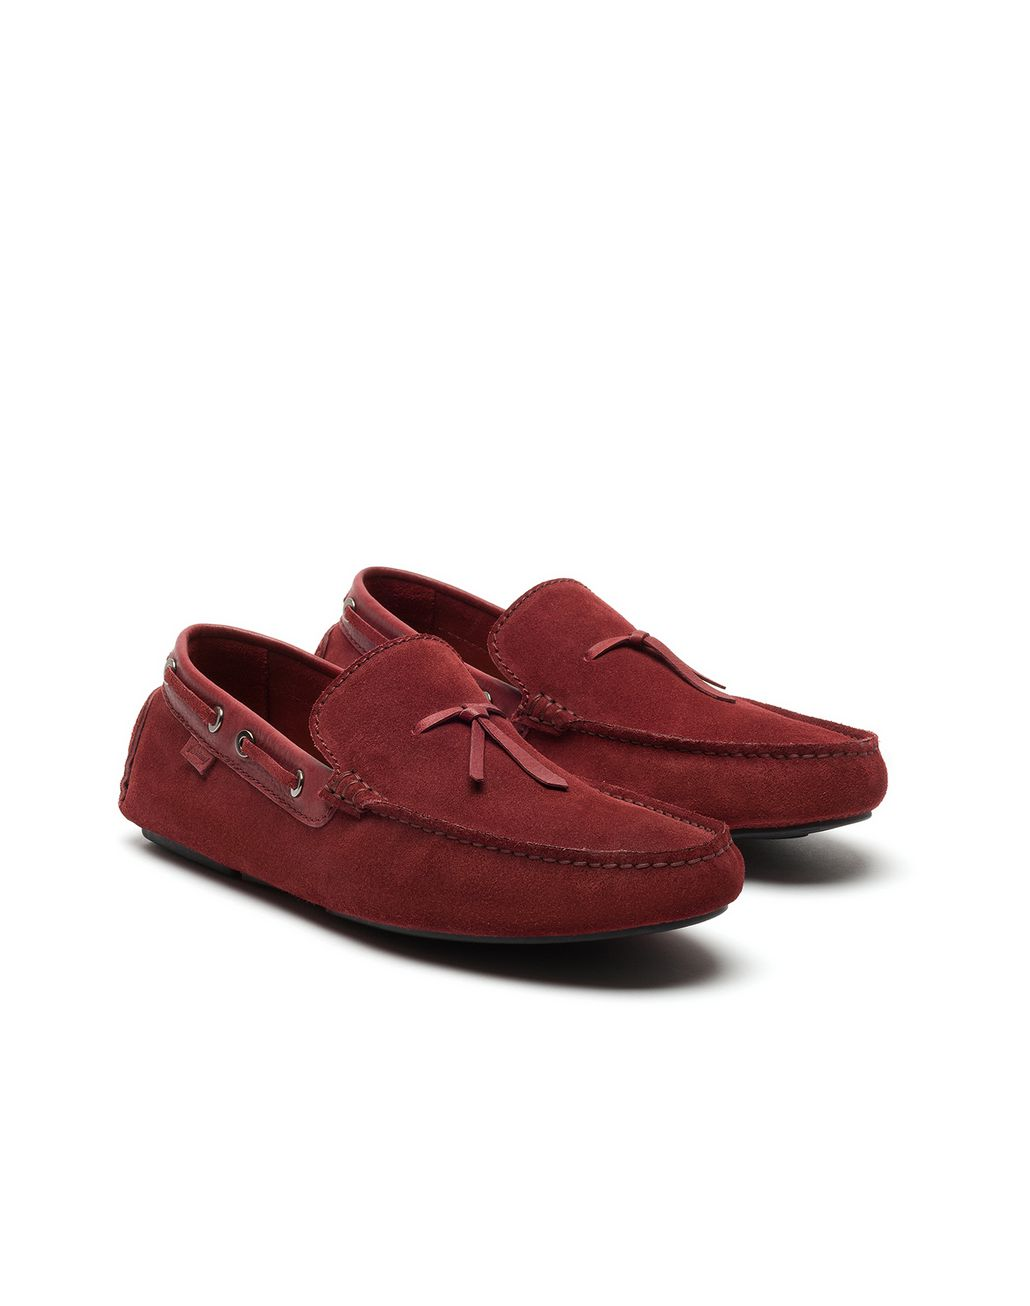 BRIONI Bordeaux Unlined Calf Suede Loafer Loafers U d